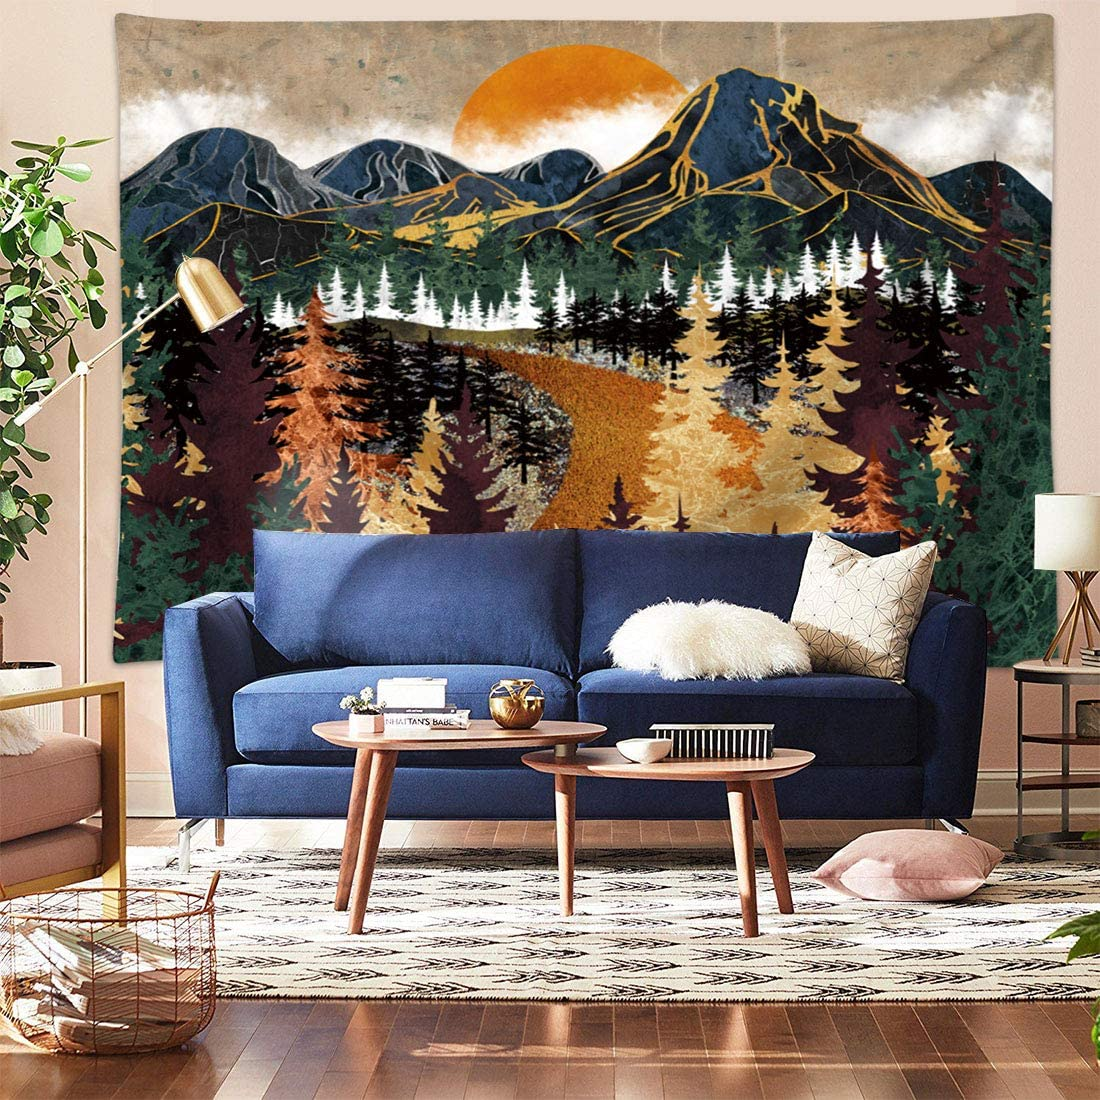 """Kernorv Mountain Sun Forest Tree Tapestry Wall Hanging Mandala Bohemian Nature Landscape Art Wall Tapestry for Living Room Bedroom Dorm Home Decor (59"""" x 78.7"""")"""